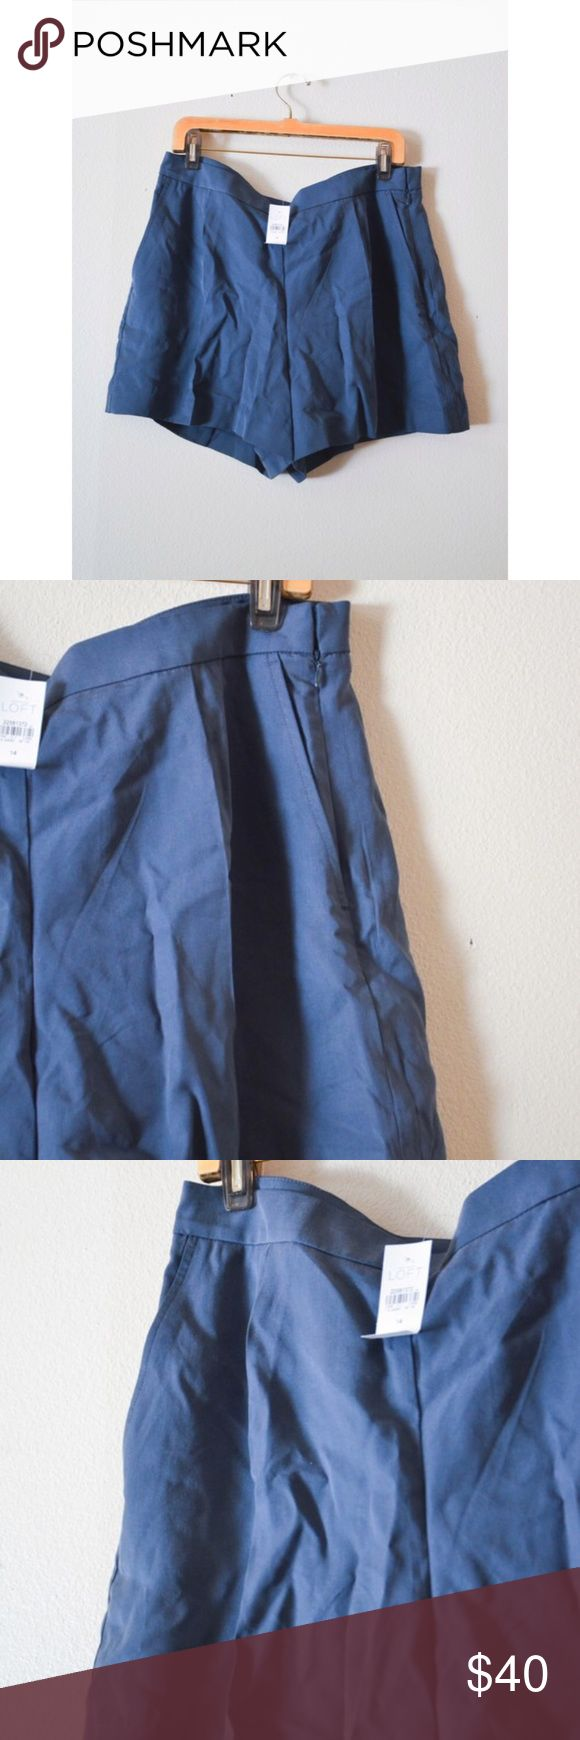 NWT LOFT navy blue high waist shorts -- size 14 -- new with tags -- high waist fit -- flared leg fit -- no swaps LOFT Shorts